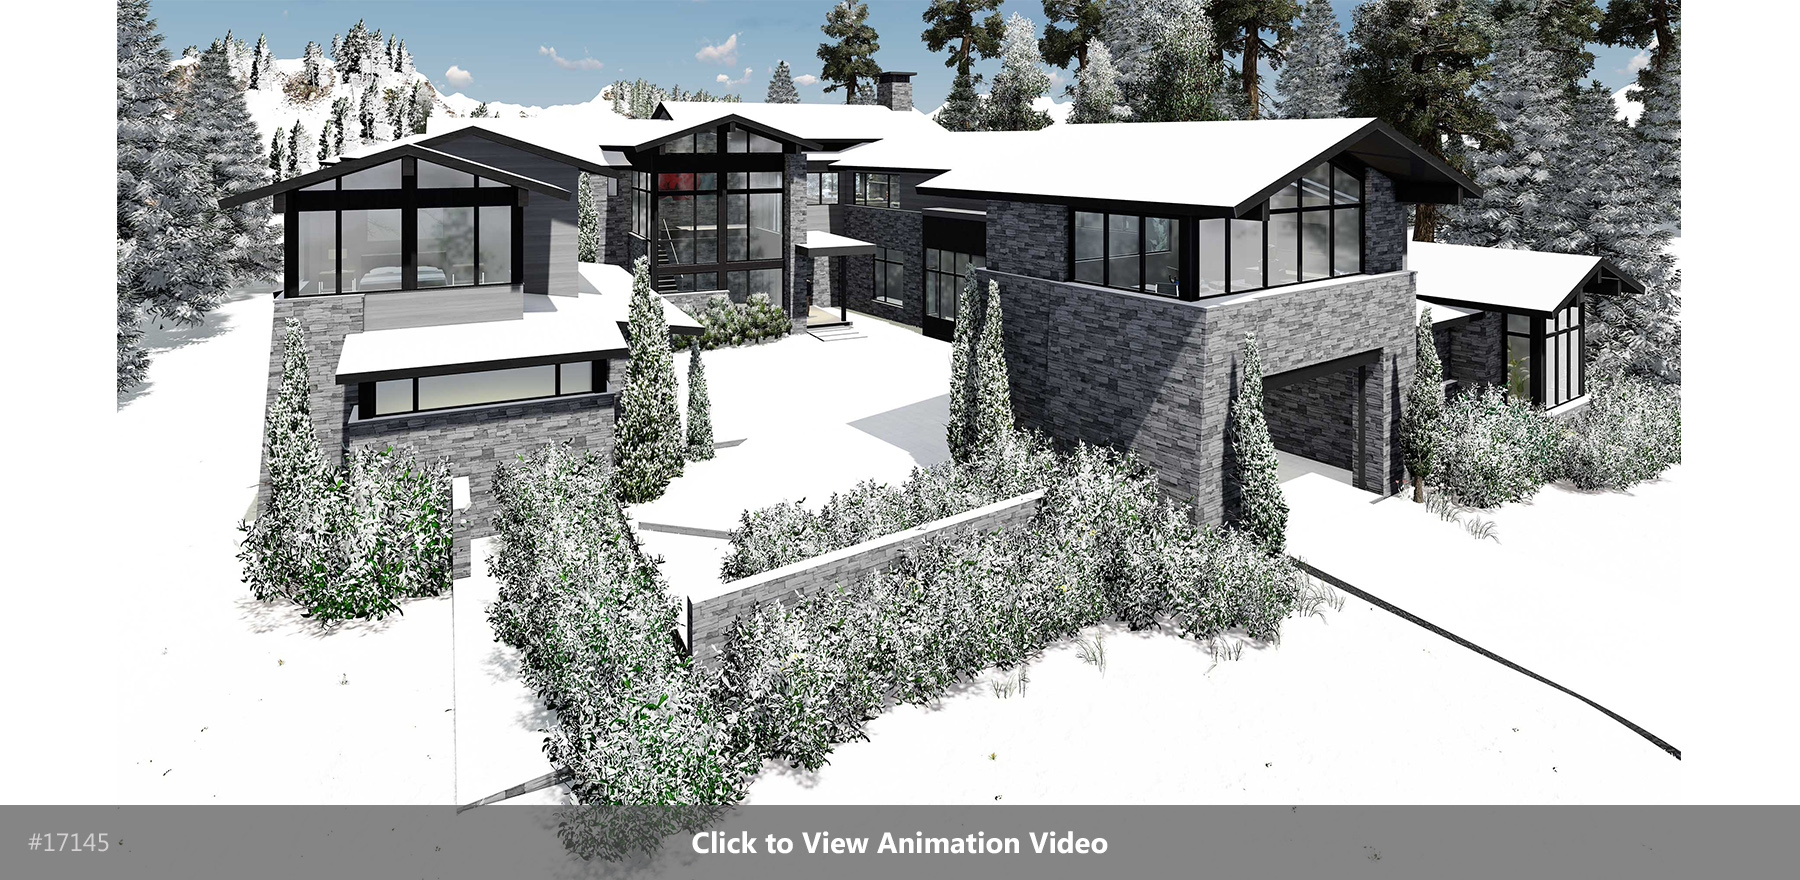 Winter Lodge Rendering